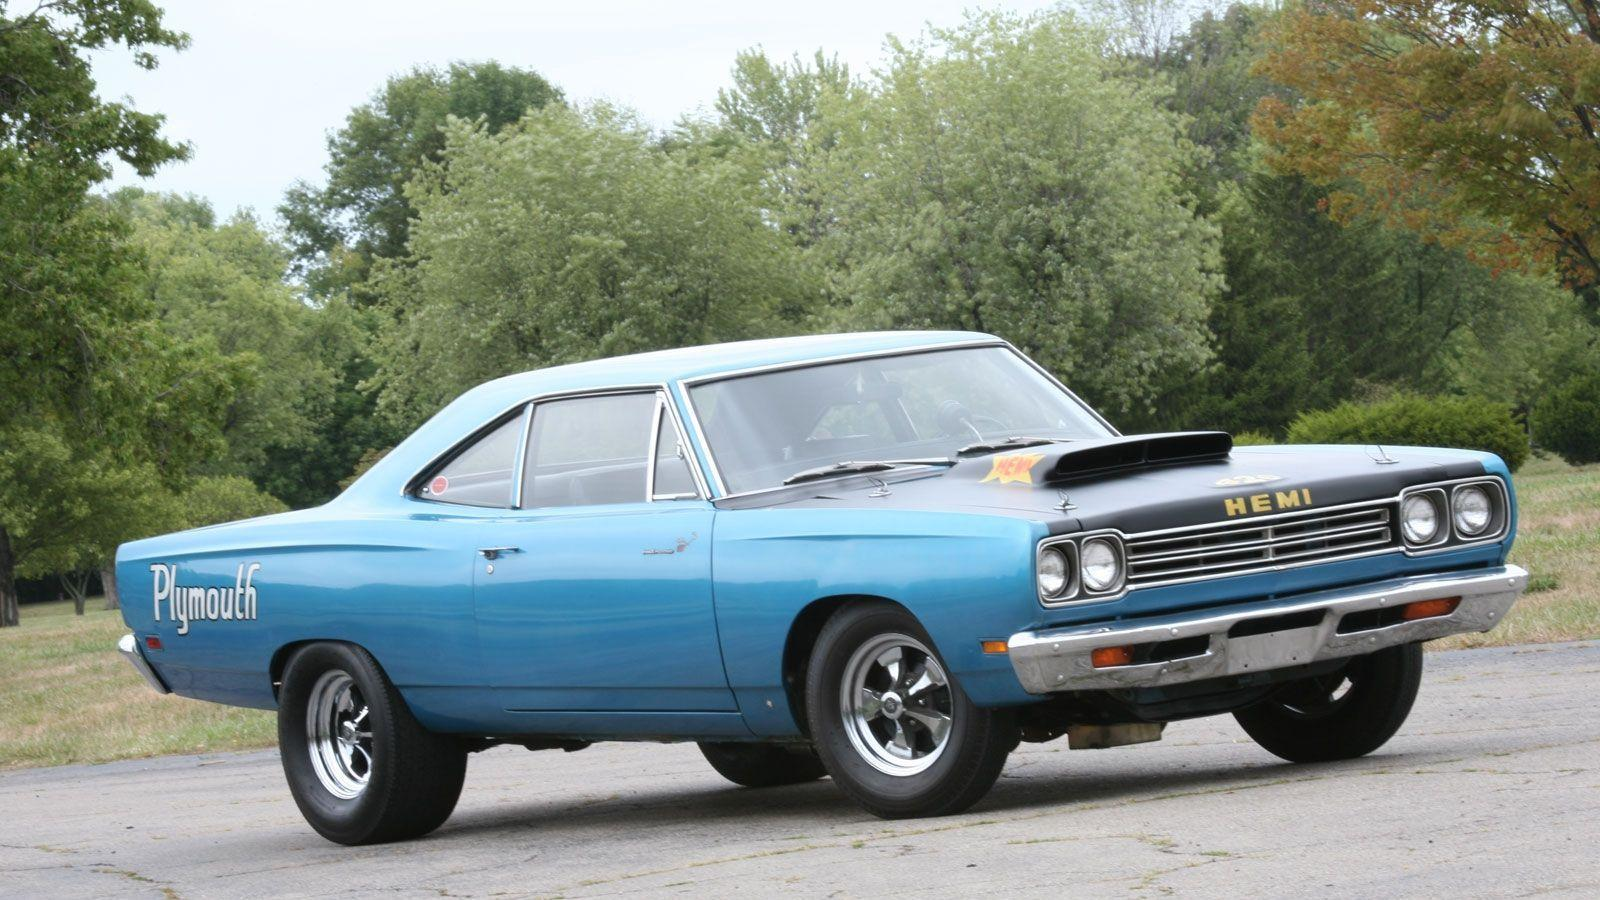 11 Plymouth Road Runner HD Wallpapers | Backgrounds - Wallpaper Abyss